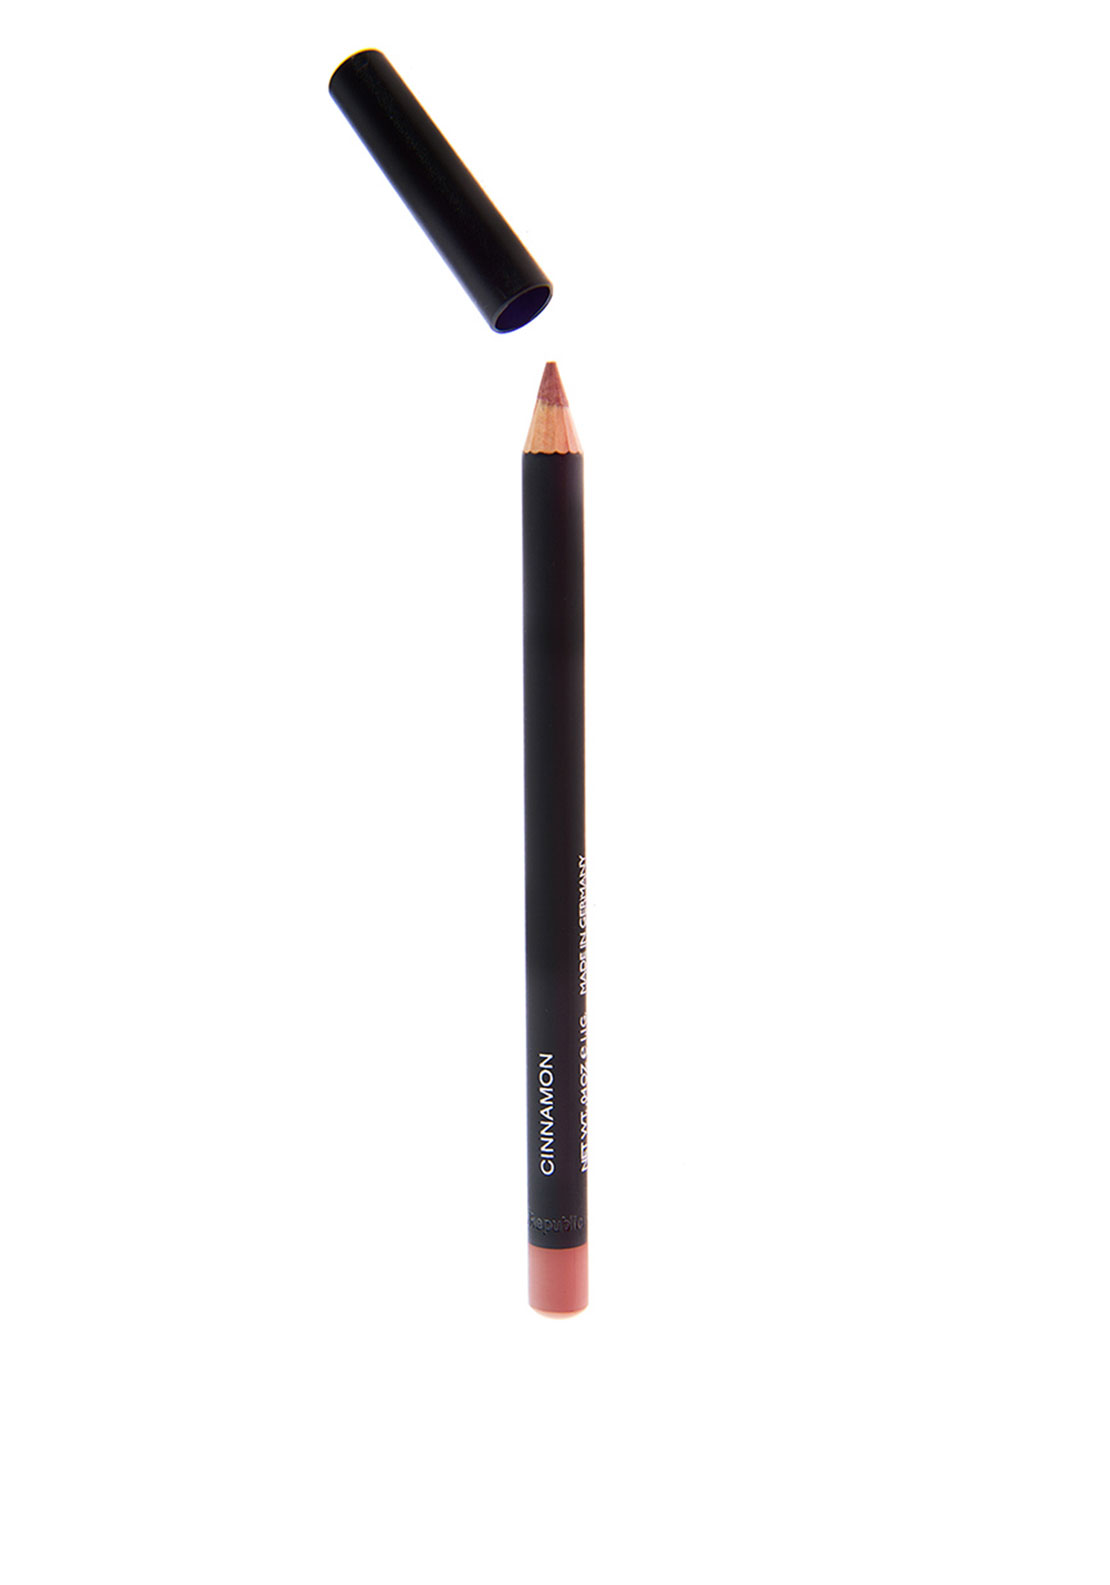 Susan McCann String of Diamonds by Lynda Strain Lip Pencil, Cinnamon